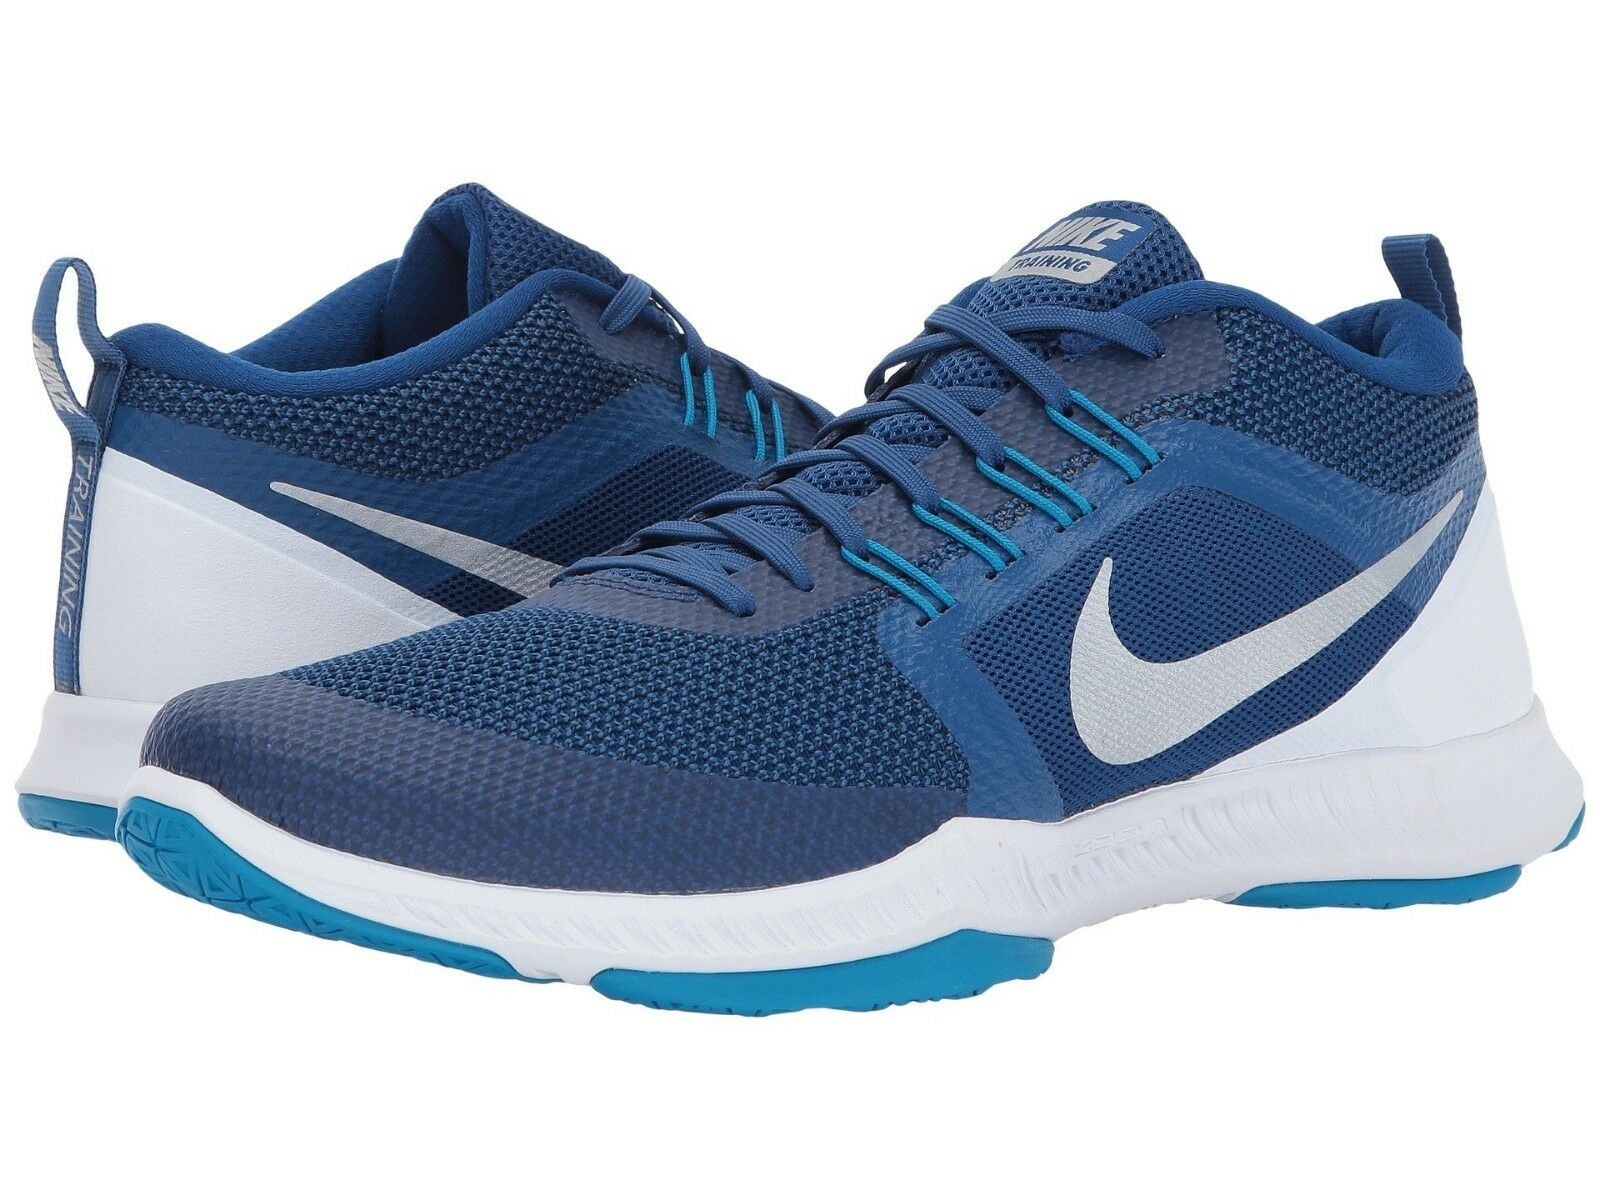 Men's Nike Zoom Domination TR Training Shoes, 917708 400 Multip Sizes Blue/Silve